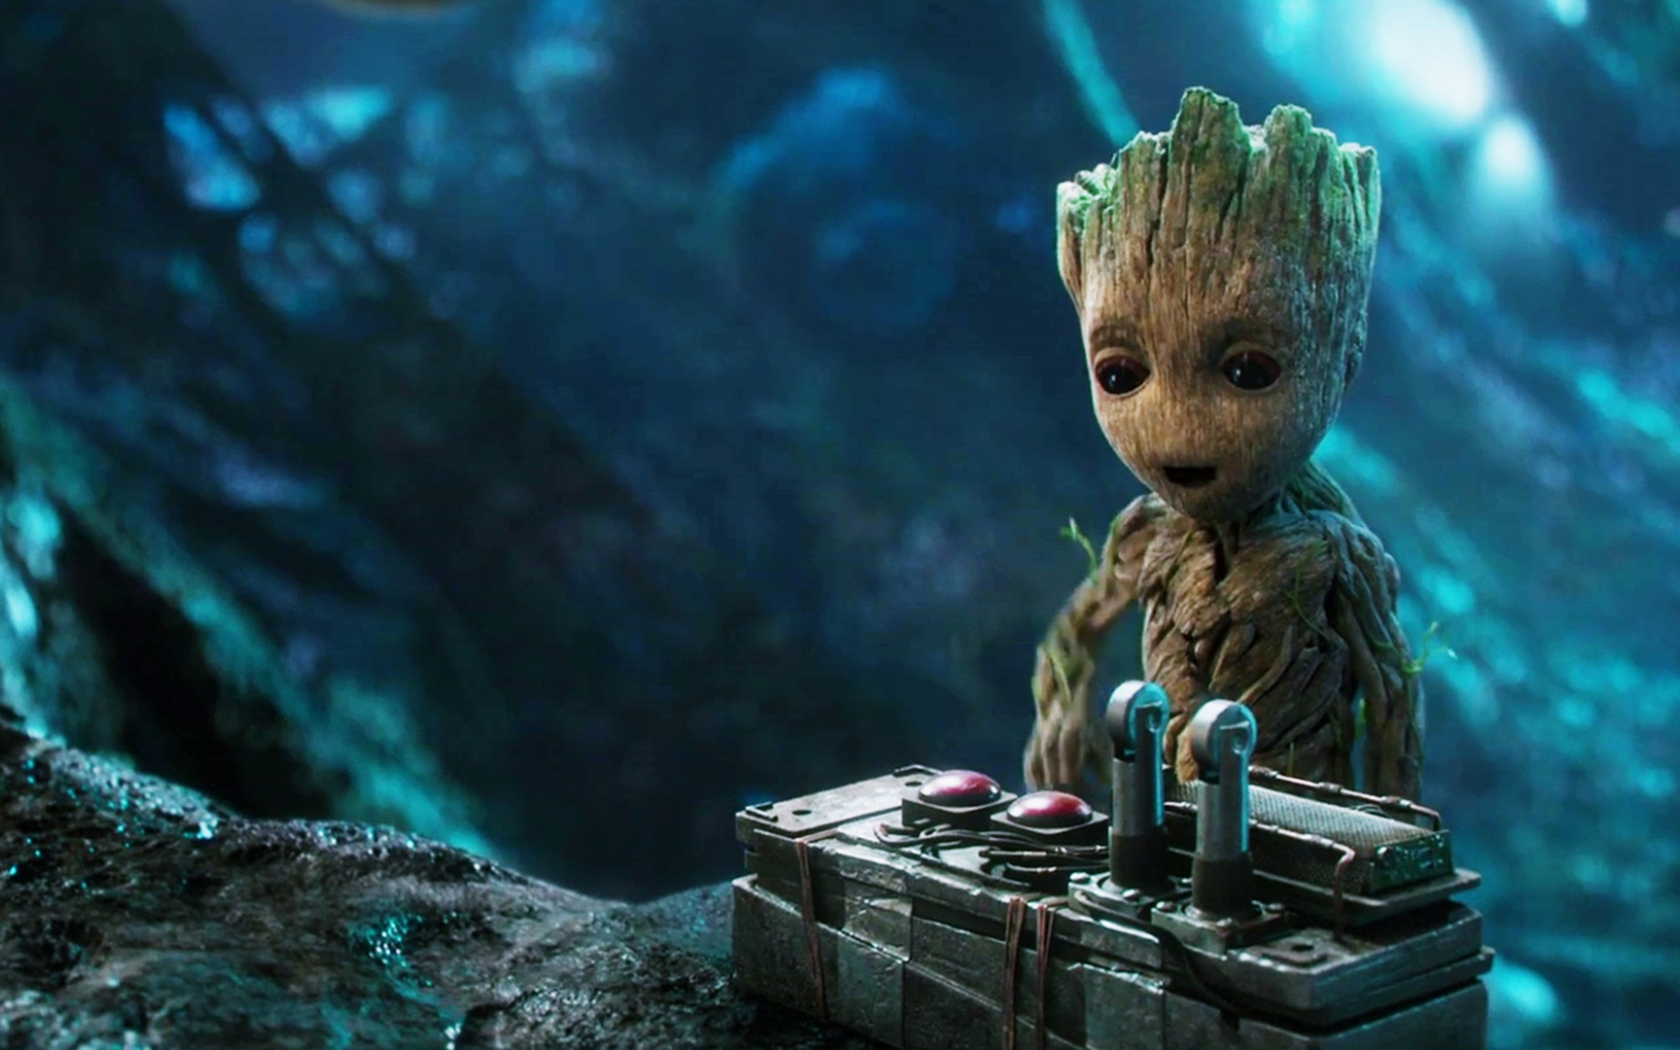 Free Download Guardians Of The Galaxy Vol 2 Baby Groot 2017